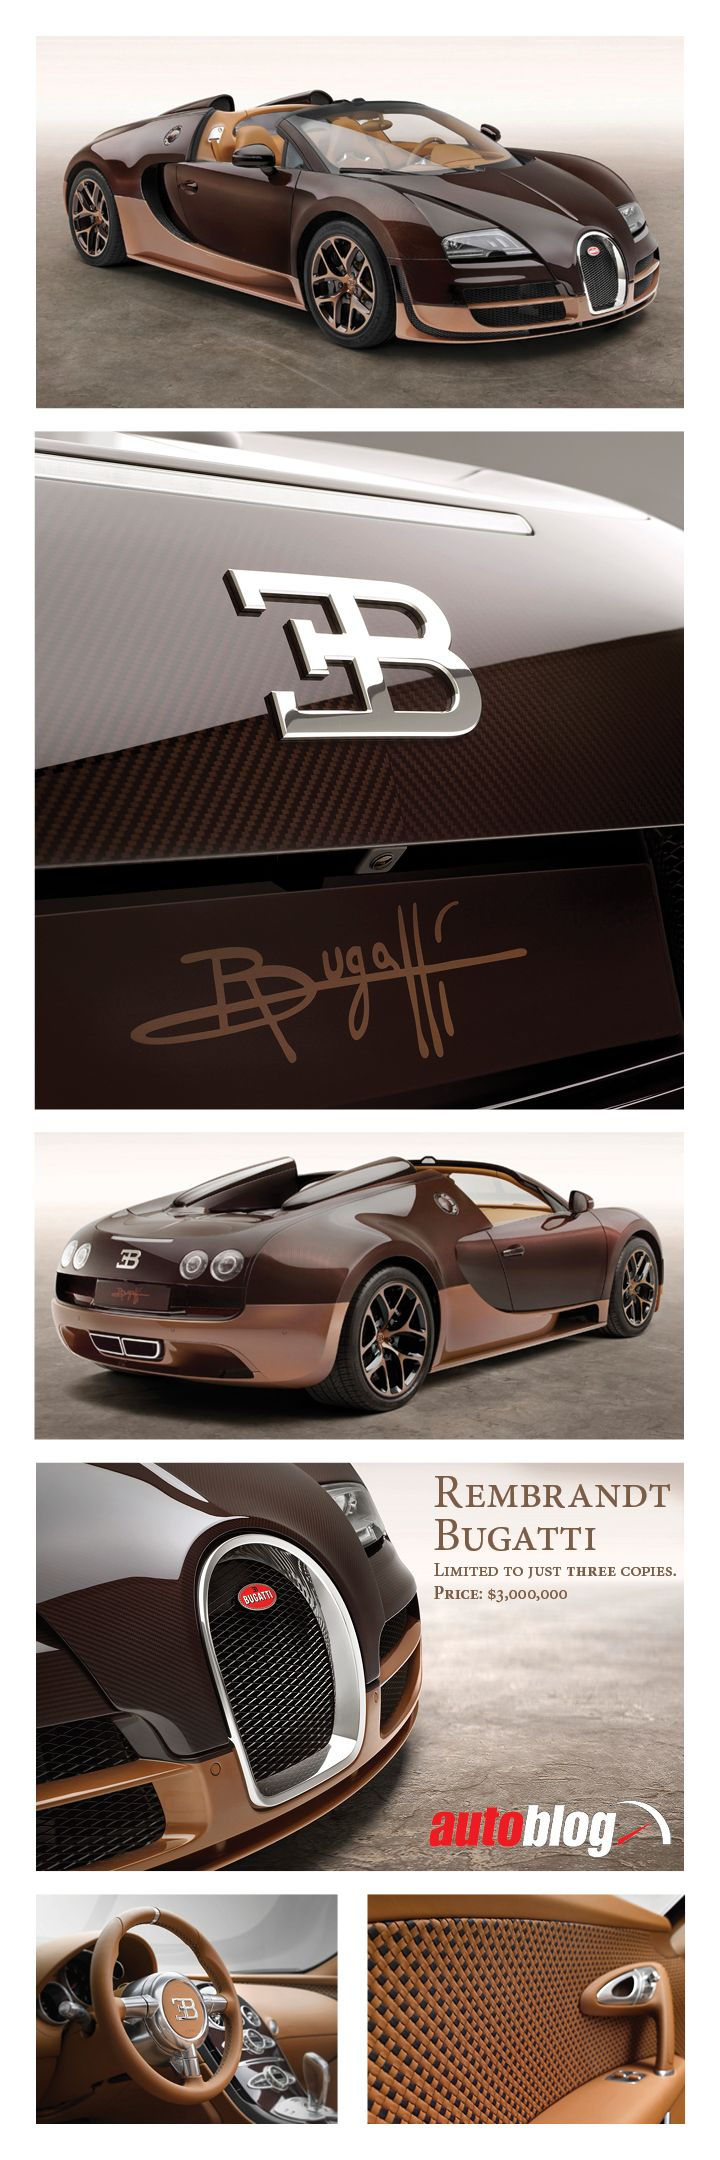 Bugatti Legends series welcomes brother Rembrandt. http://aol.it/1jMY8Ea @Bugatti